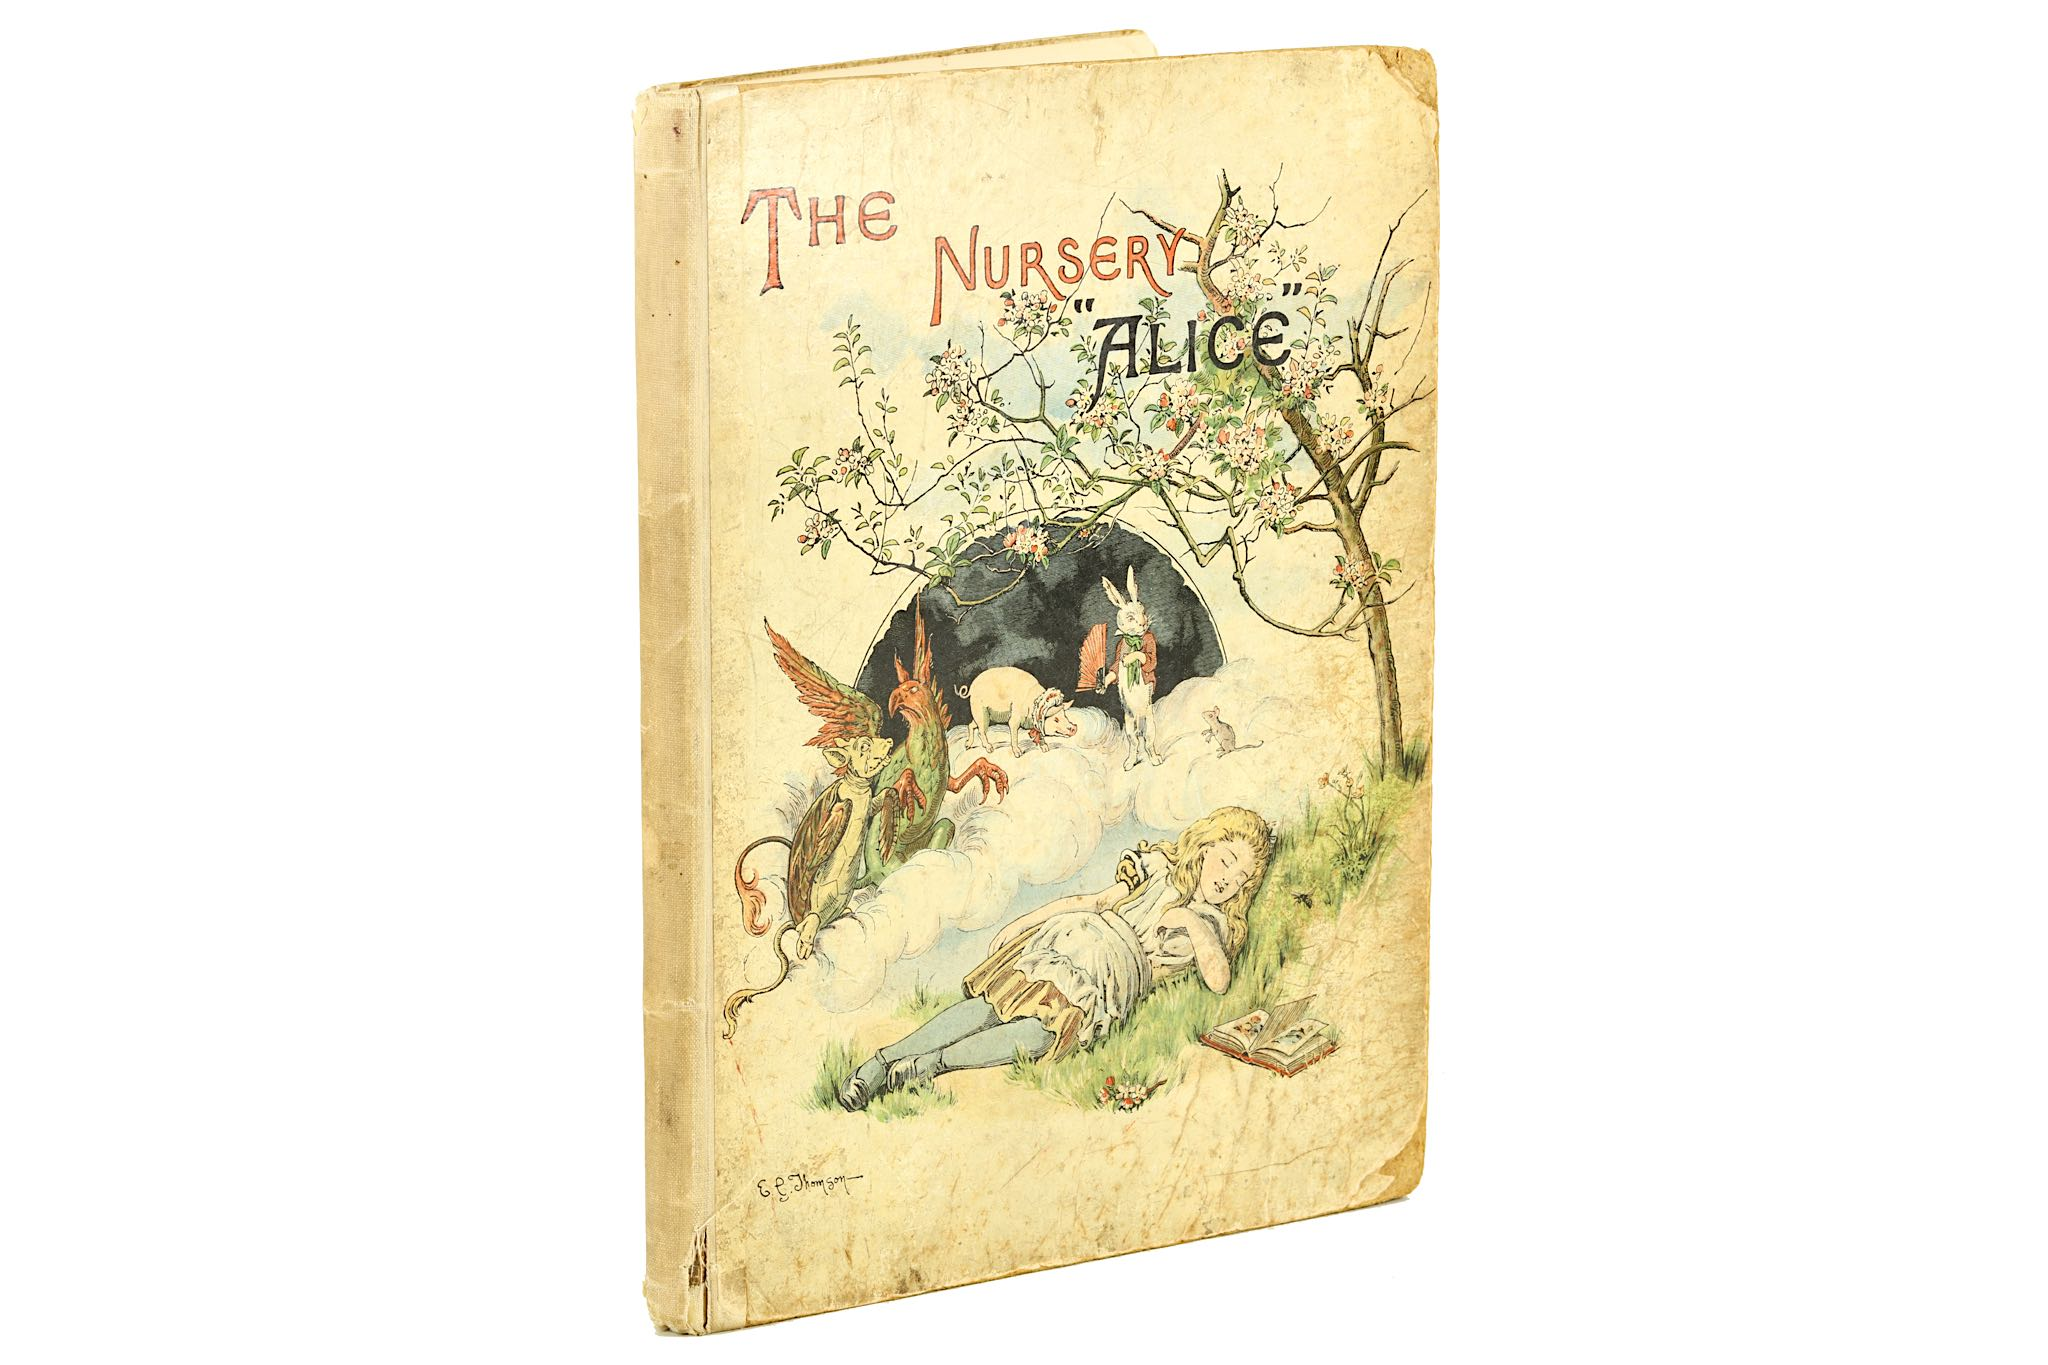 Lot 140 - Carroll, Lewis [Dodgson, Charles Lutwidge] The Nursery Alice, FIRST EDITION, inscribed 'Marie Van de